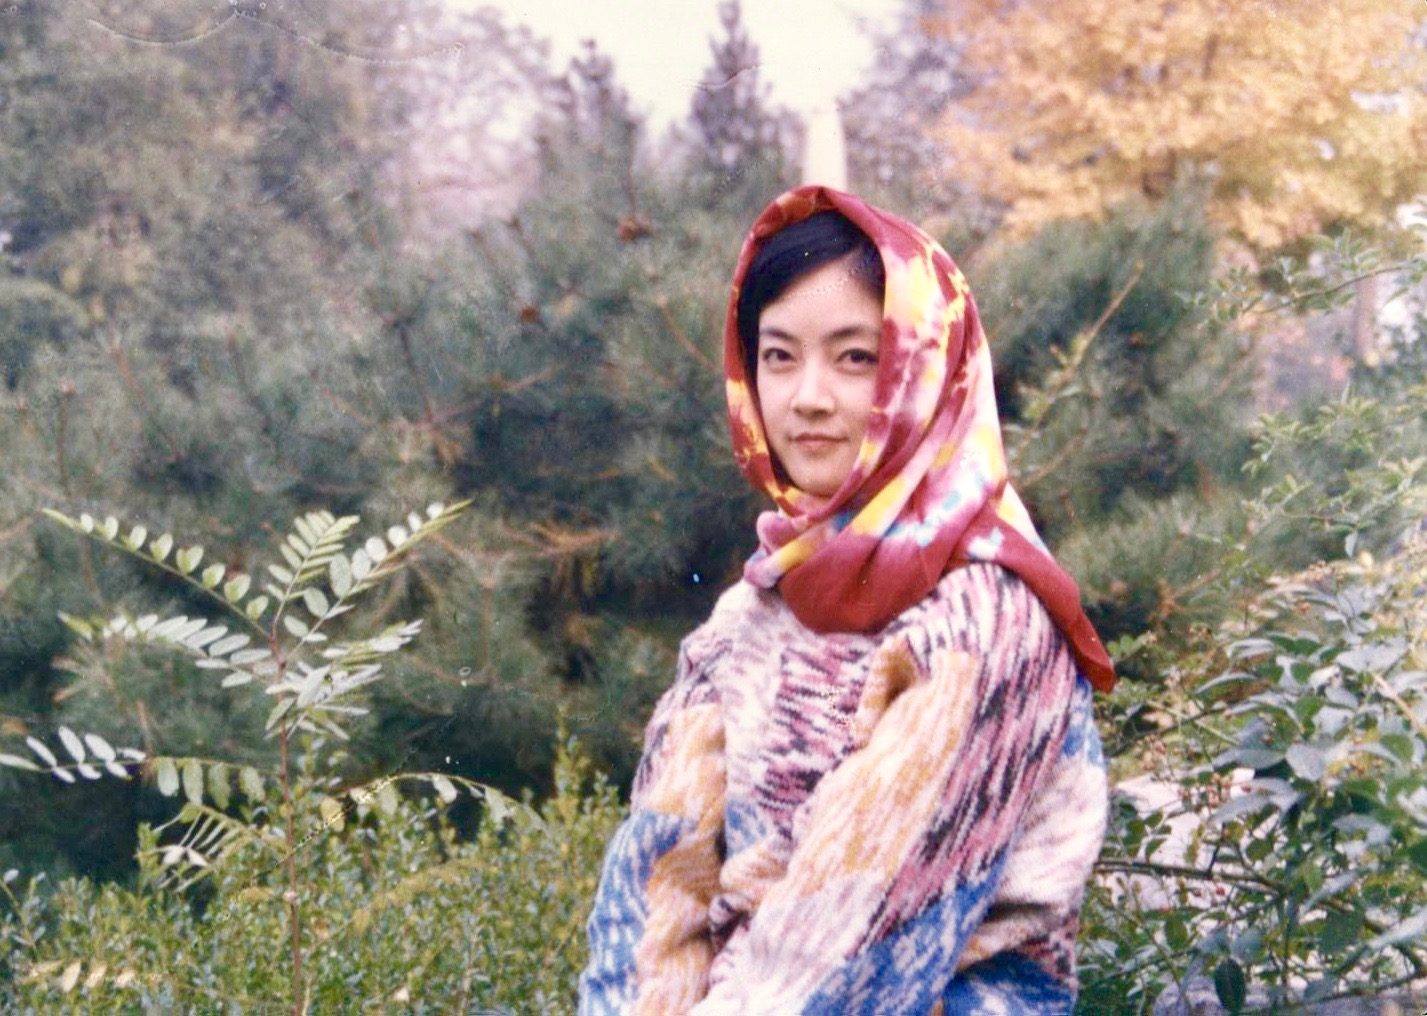 Jennifer Zeng  at  Fragrant Hills  in Beijing in 1989. 曾錚1989年秋攝於北京香山公園。